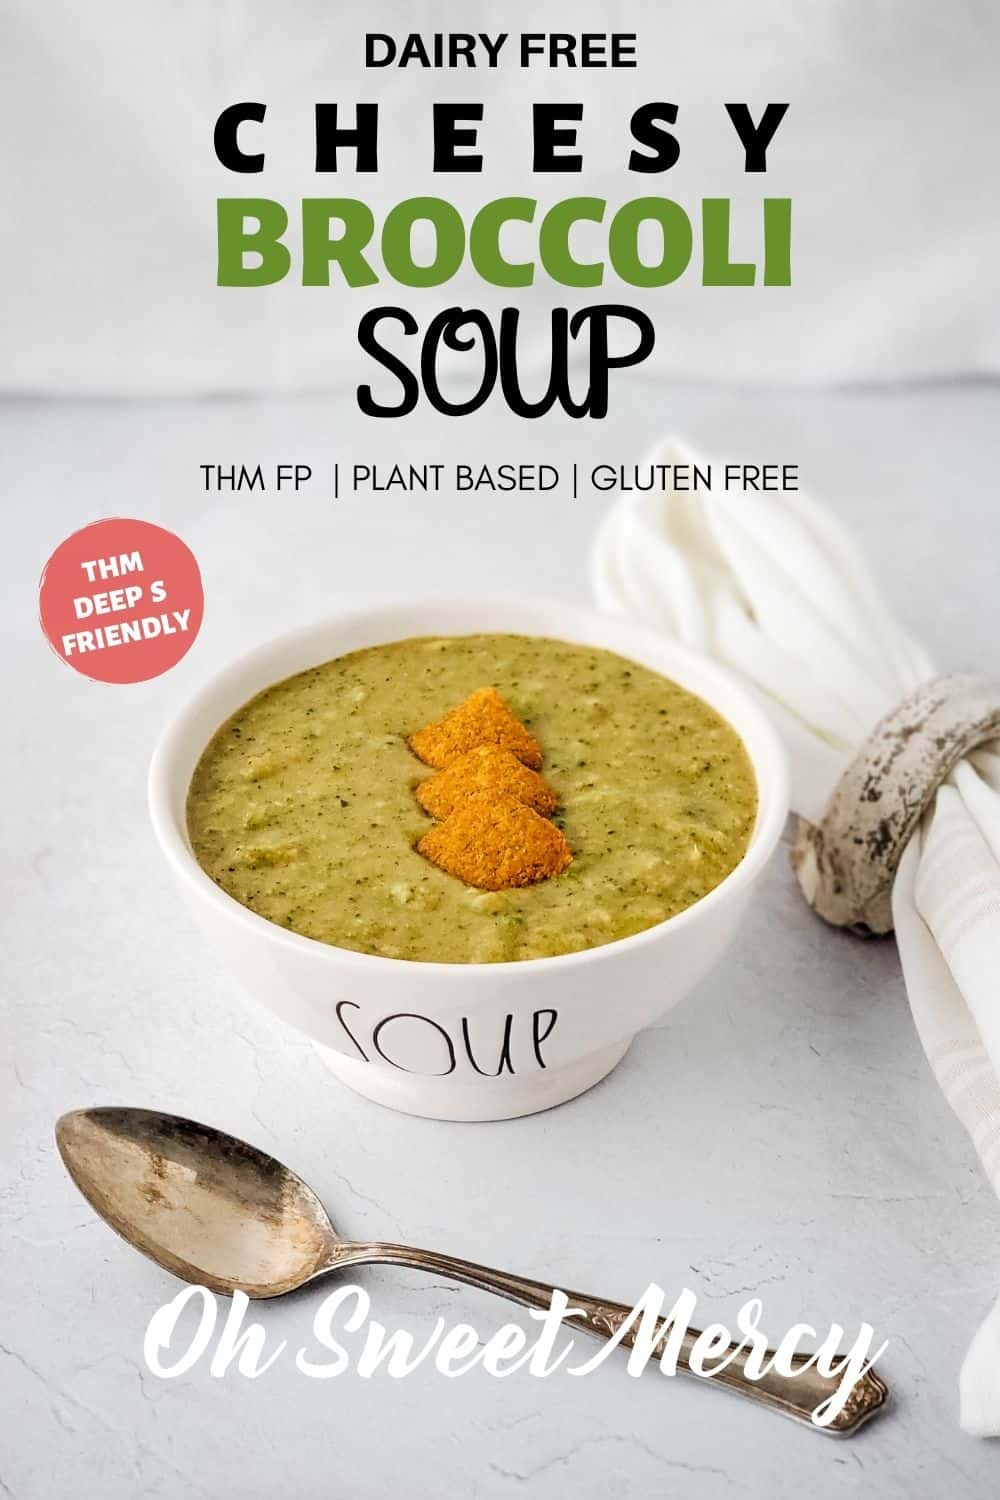 My Dairy Free Cheesy Broccoli Soup is the best of all worlds for the THM plan - it's not only a Fuel Pull, but also suitable for Deep S! That means it goes with allll the things. It's also a great recipe to stir in some greens powder, if you have some on hand. #lowcarb #lowfat #plantbased #vegan #easy #thm #keto @ohsweetmercy